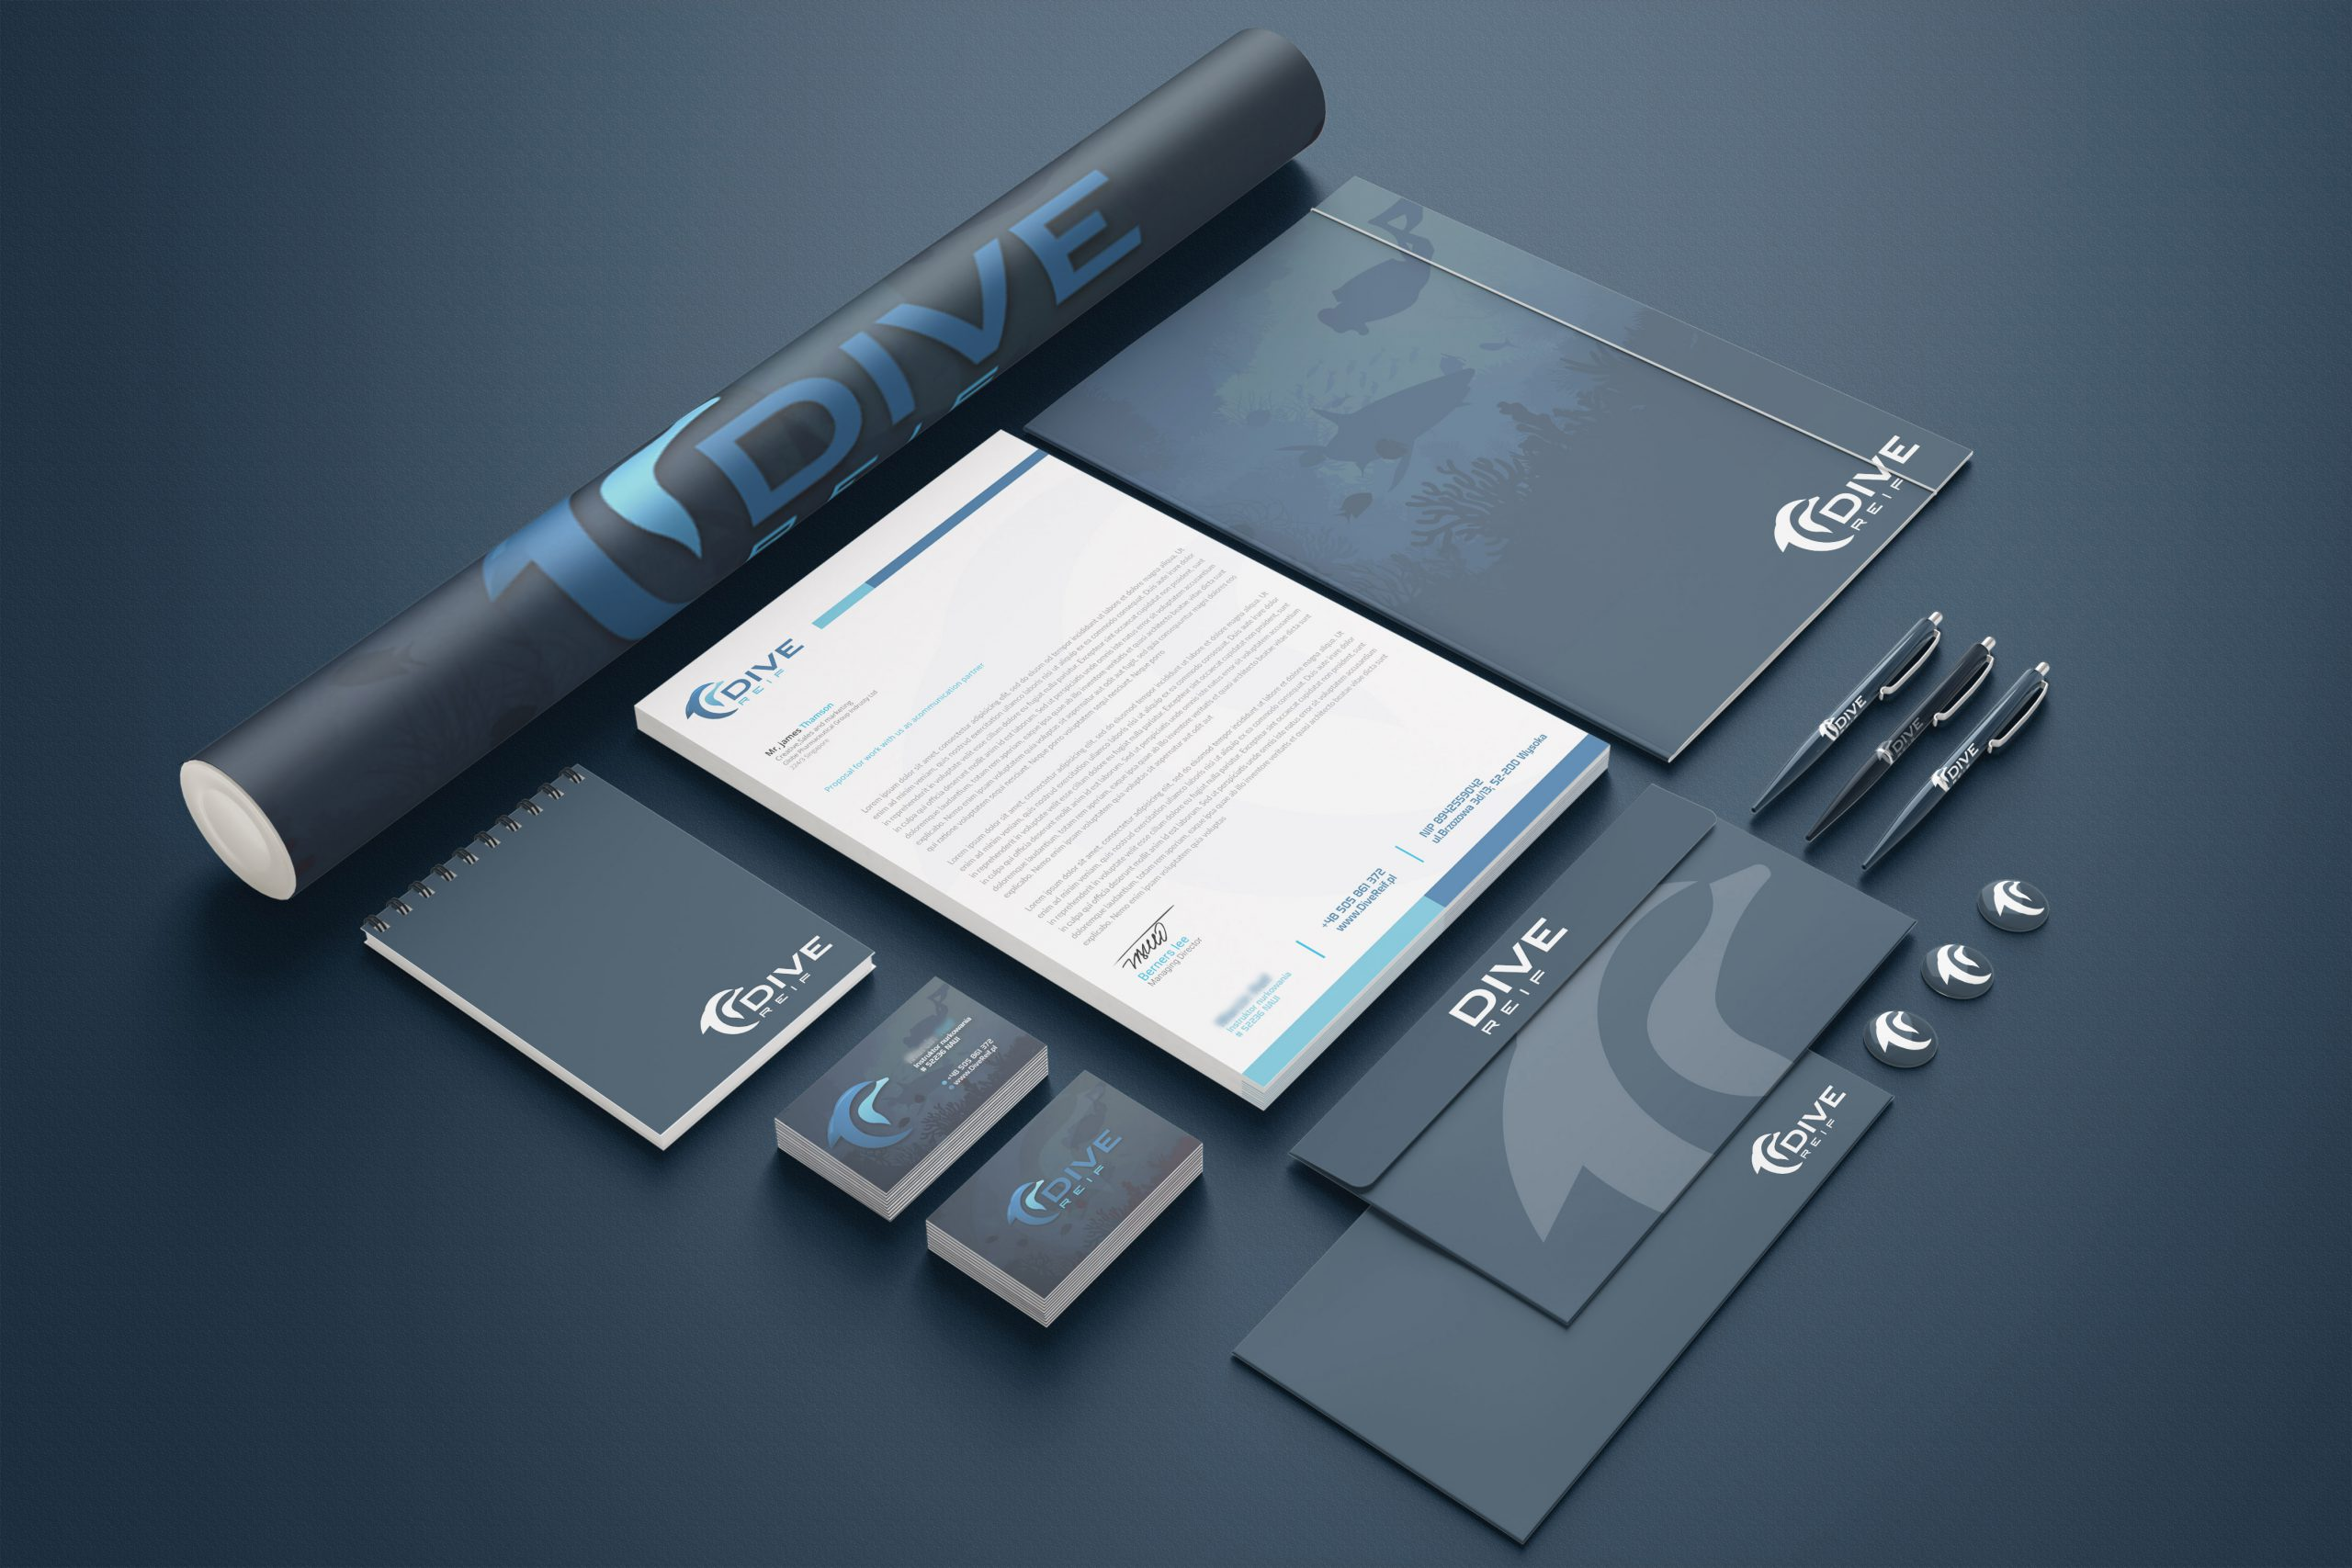 Branding identity mock-up set